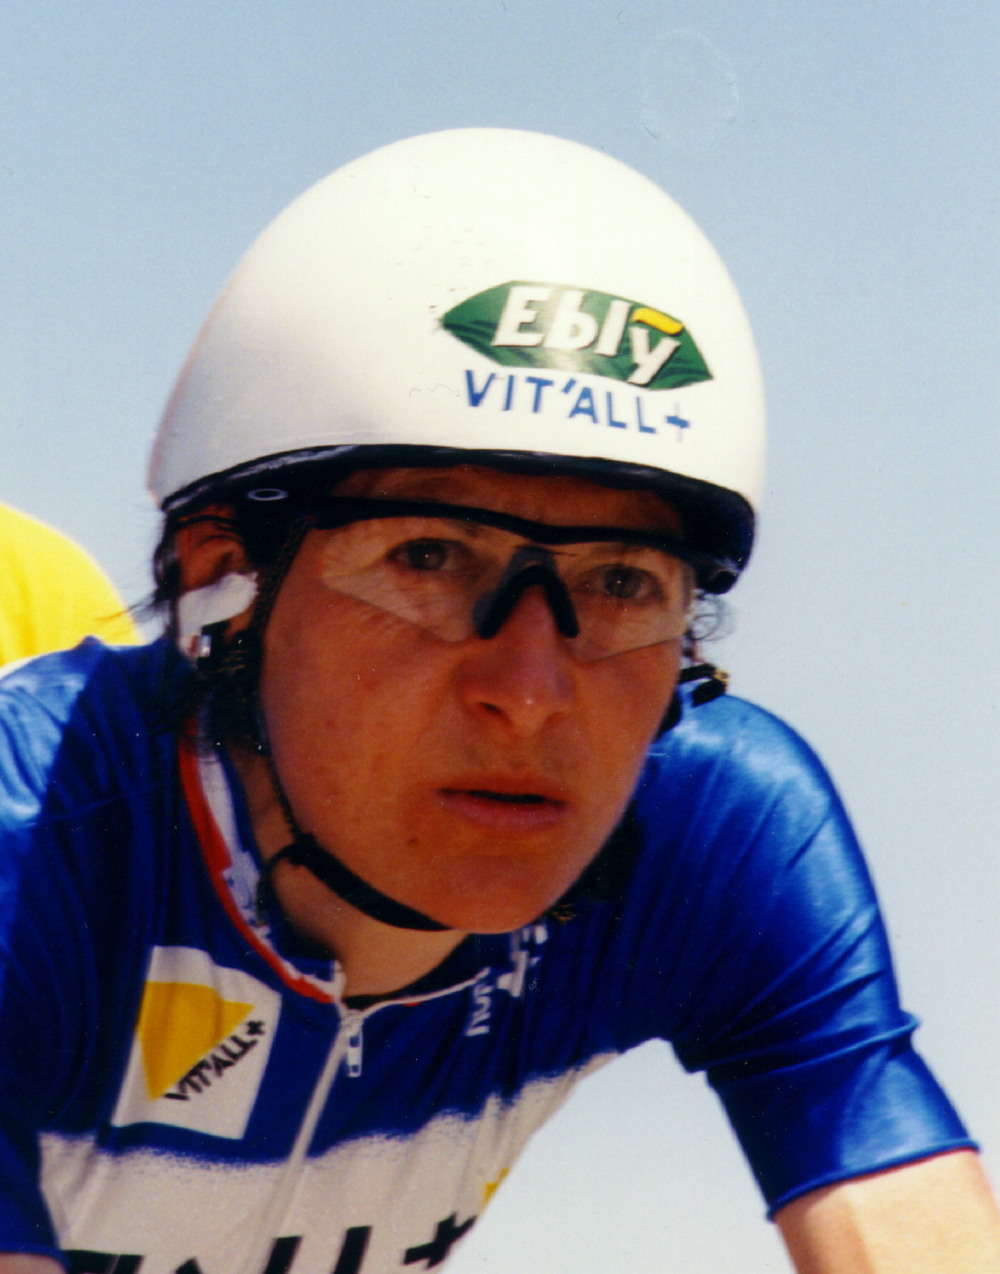 Jeannie Longo is a French racing cyclist, 59-time French champion and 13-time world champion. Longo is still active in cycling as of 2011 and is widely considered one of the greatest female cyclists of all time.